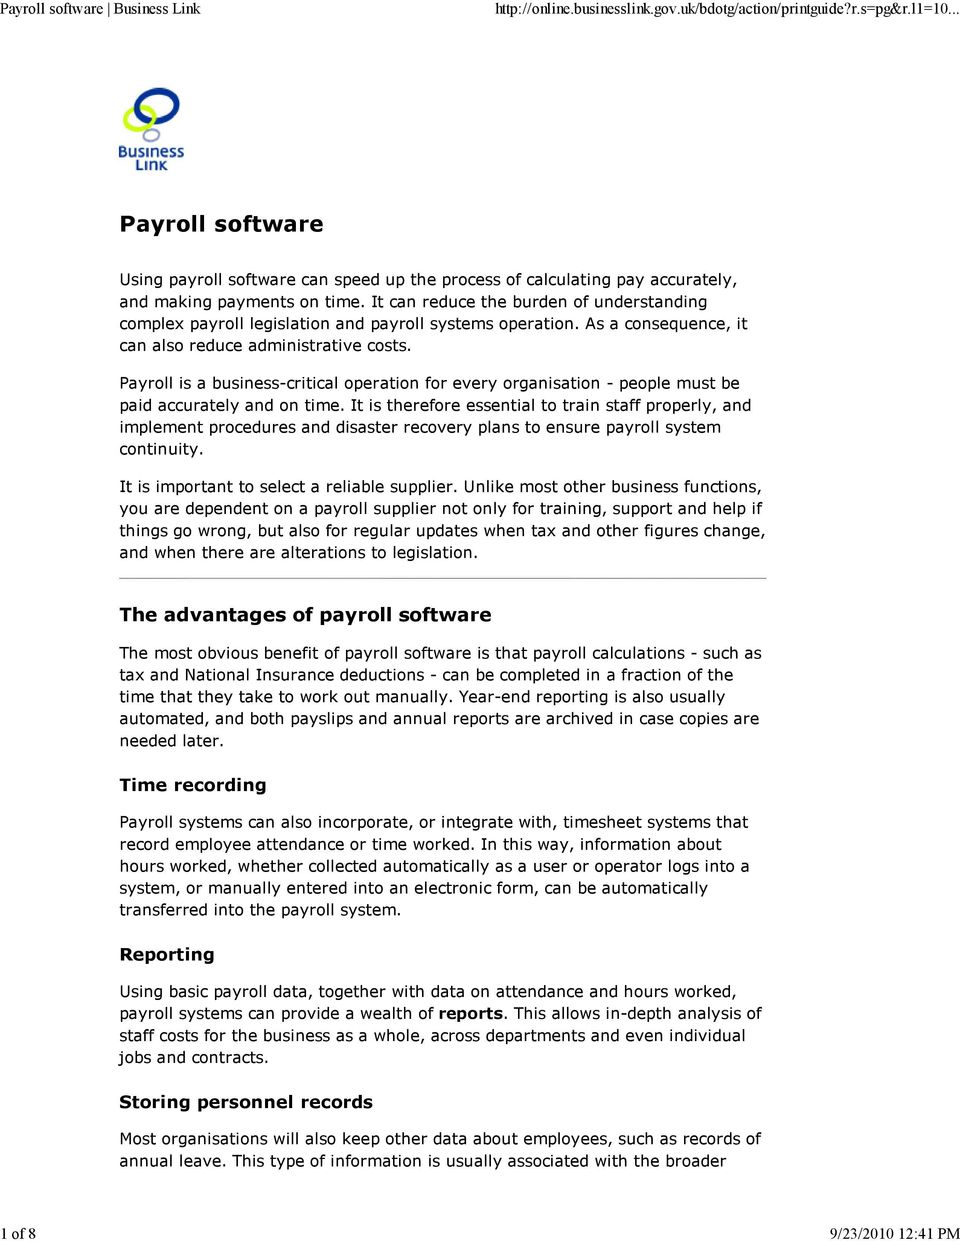 Payroll is a business-critical operation for every organisation - people must be paid accurately and on time.